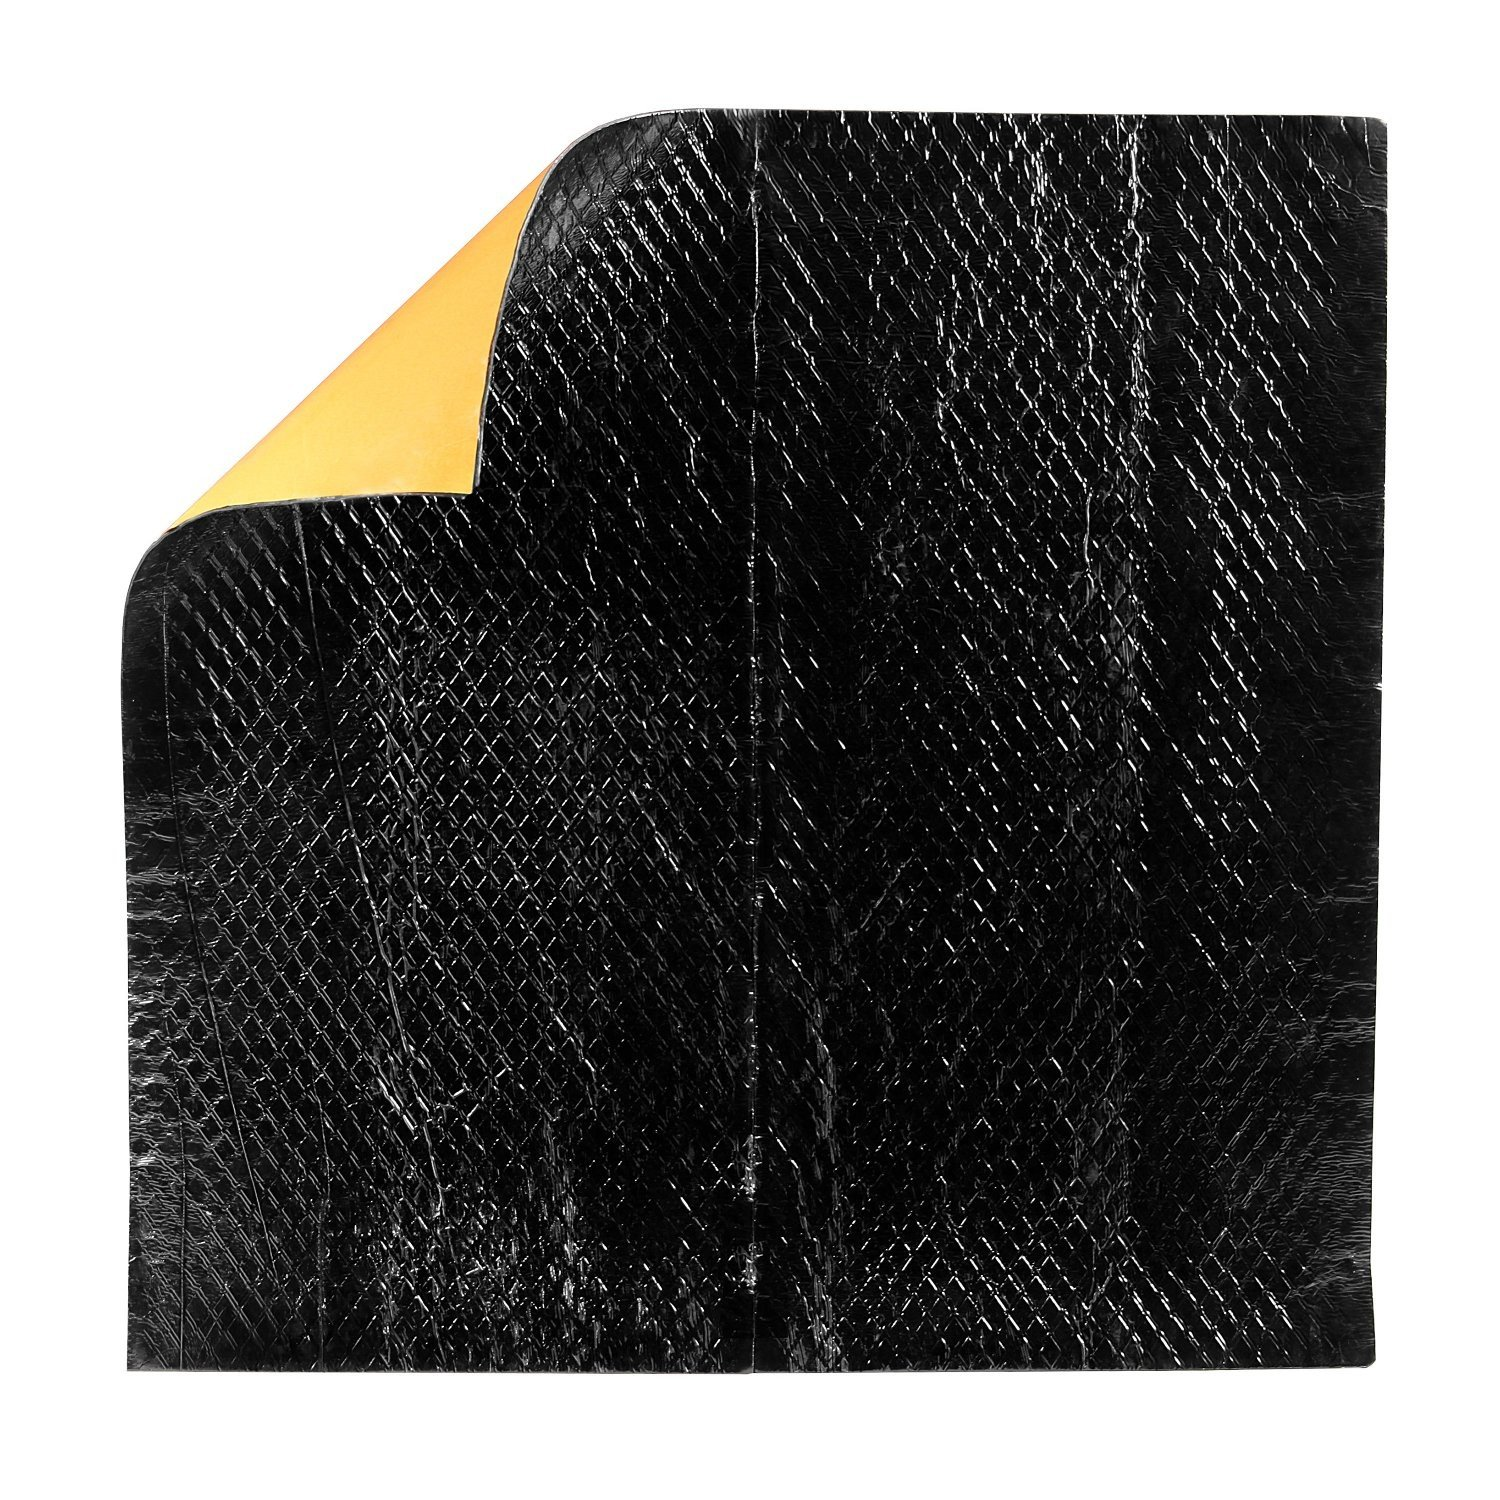 3M Sound Deadening Pads, Self-Adhesive Sheets, Black One Pad Each